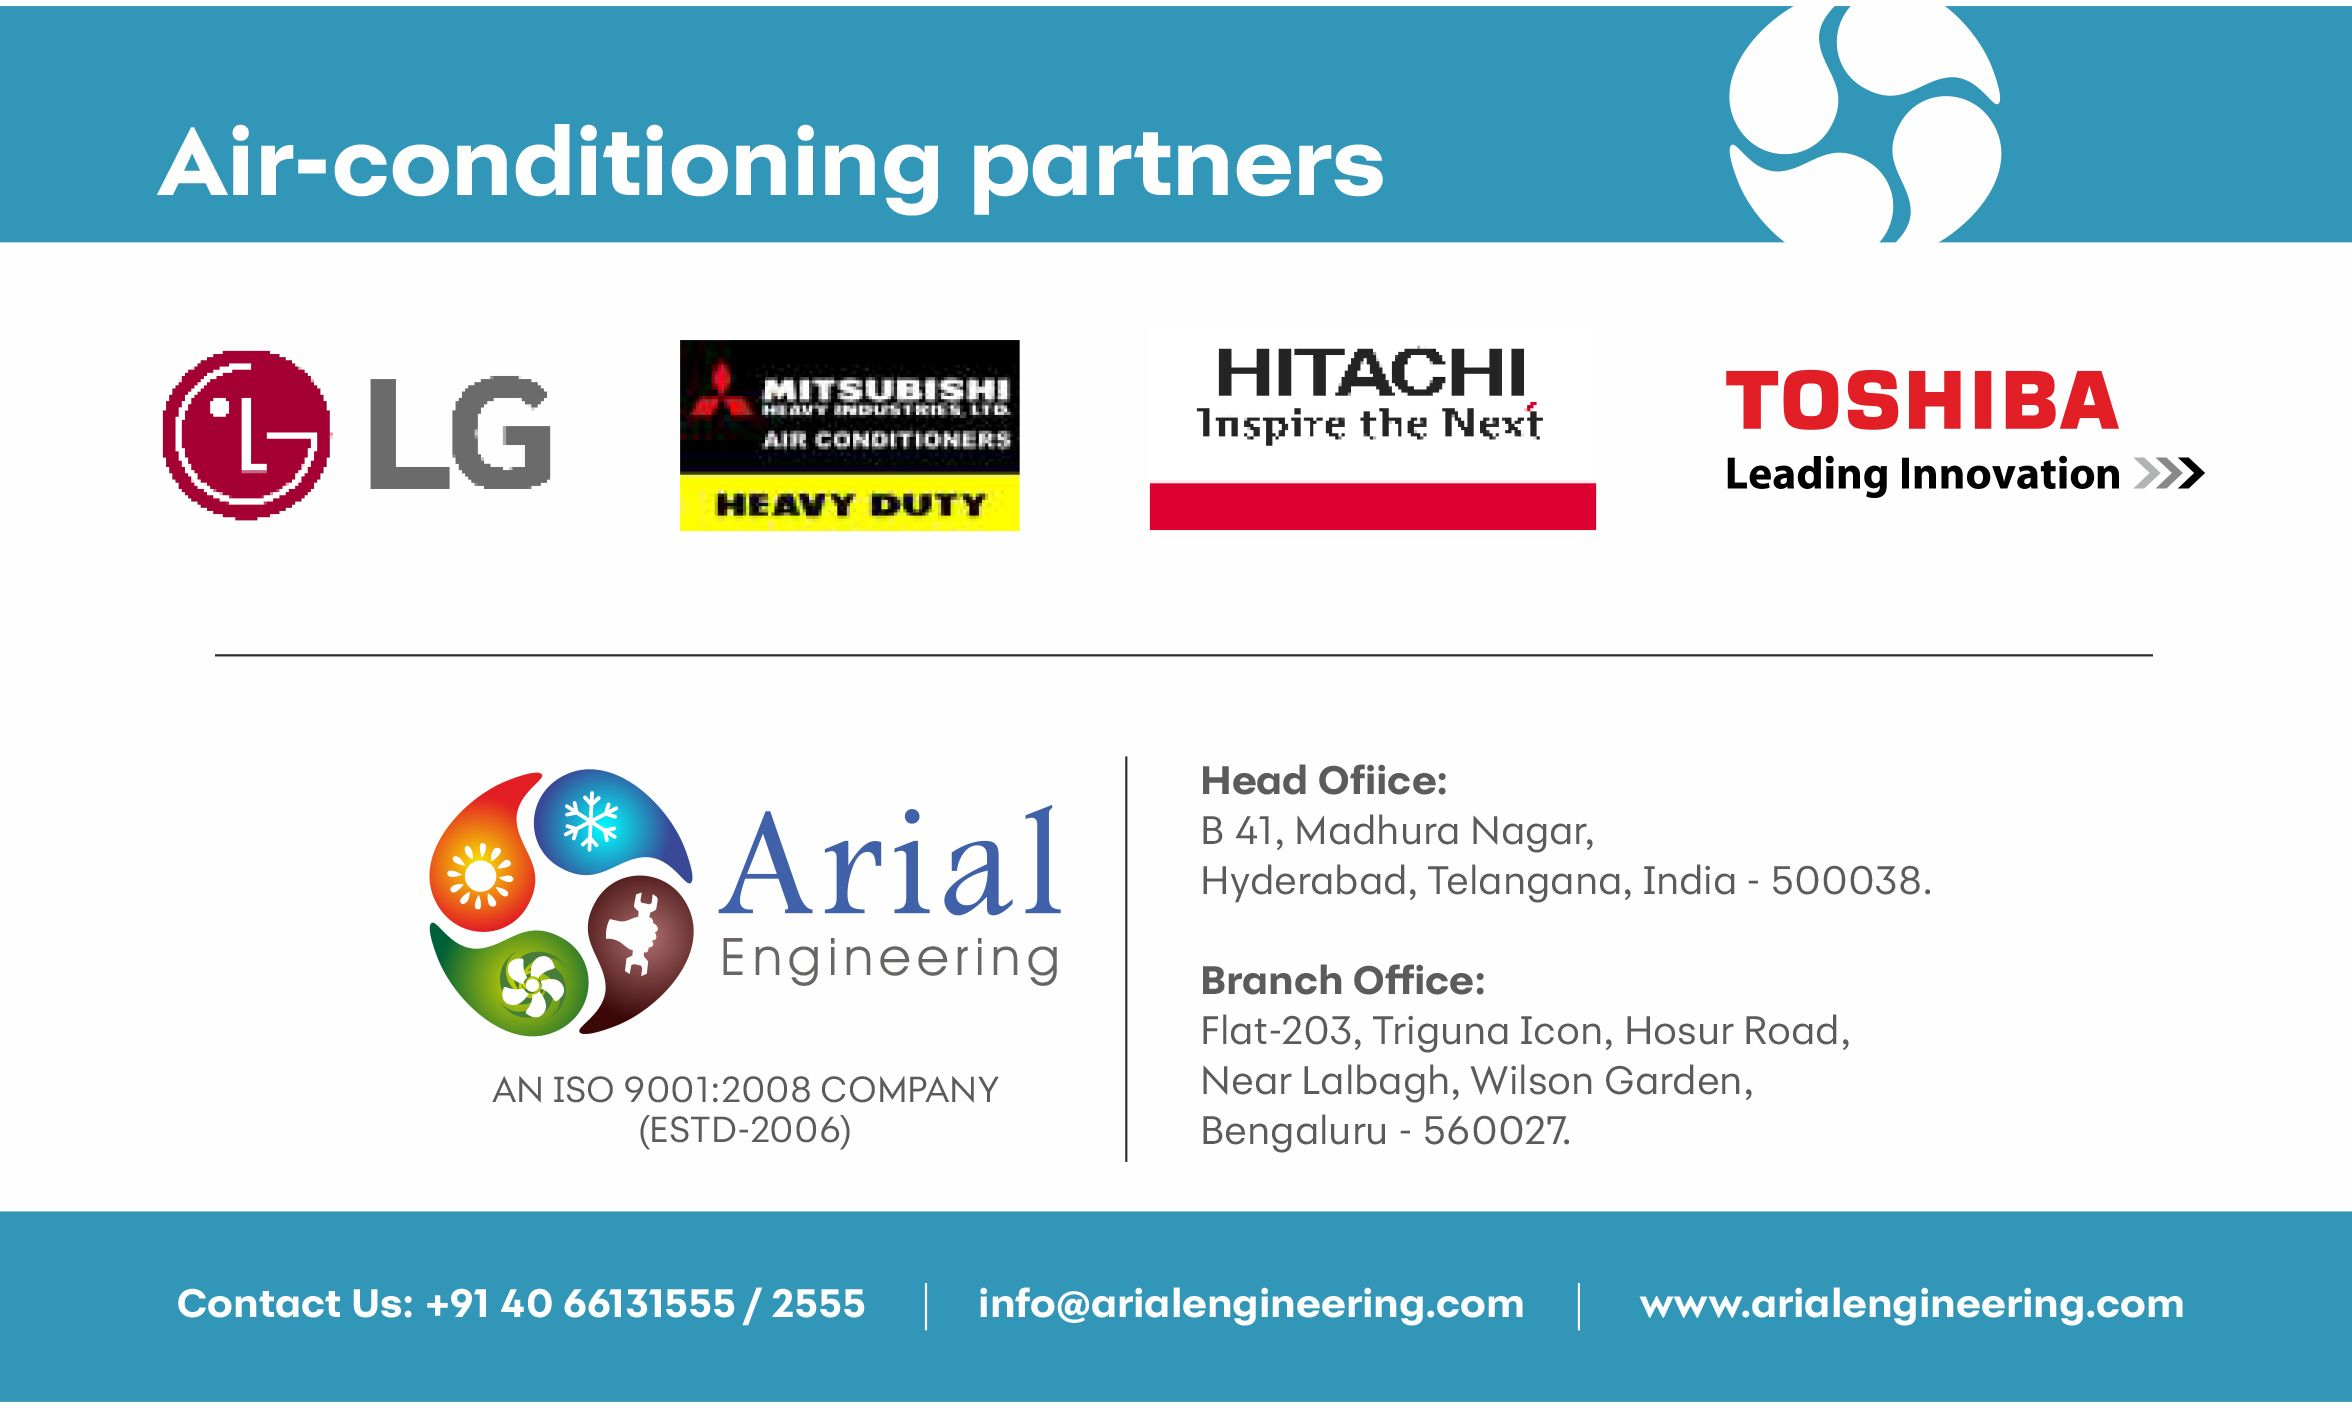 Our Air Conditioning Partners Hitachi Lg Mitsubishiheavy